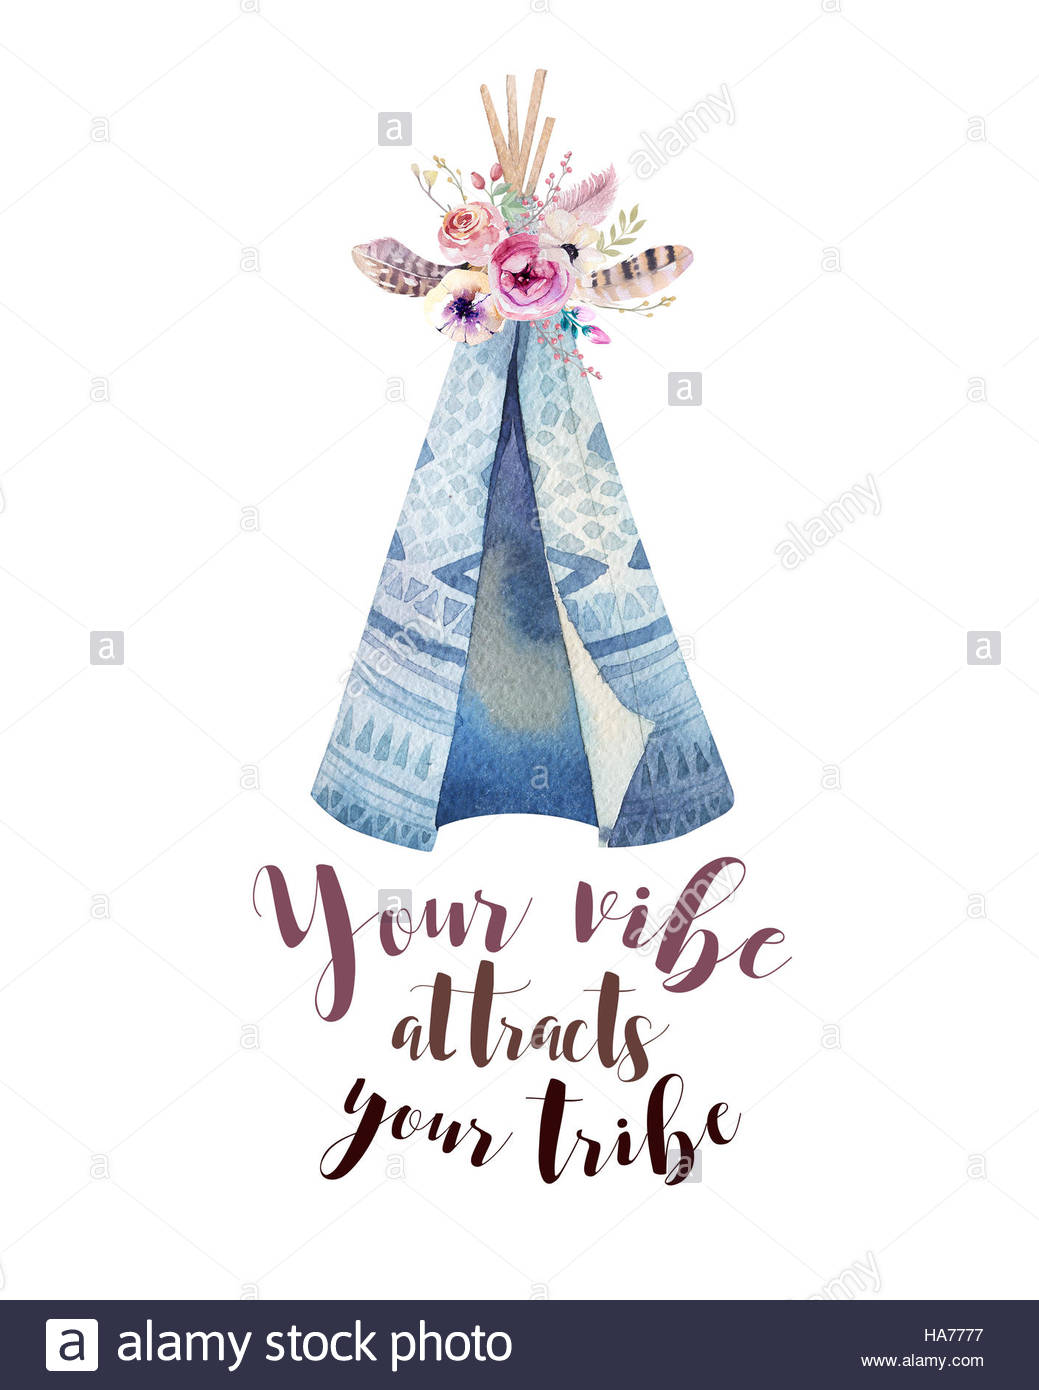 1039x1390 Handdrawn Watercolor Tribal Teepee, Isolated White With Quote